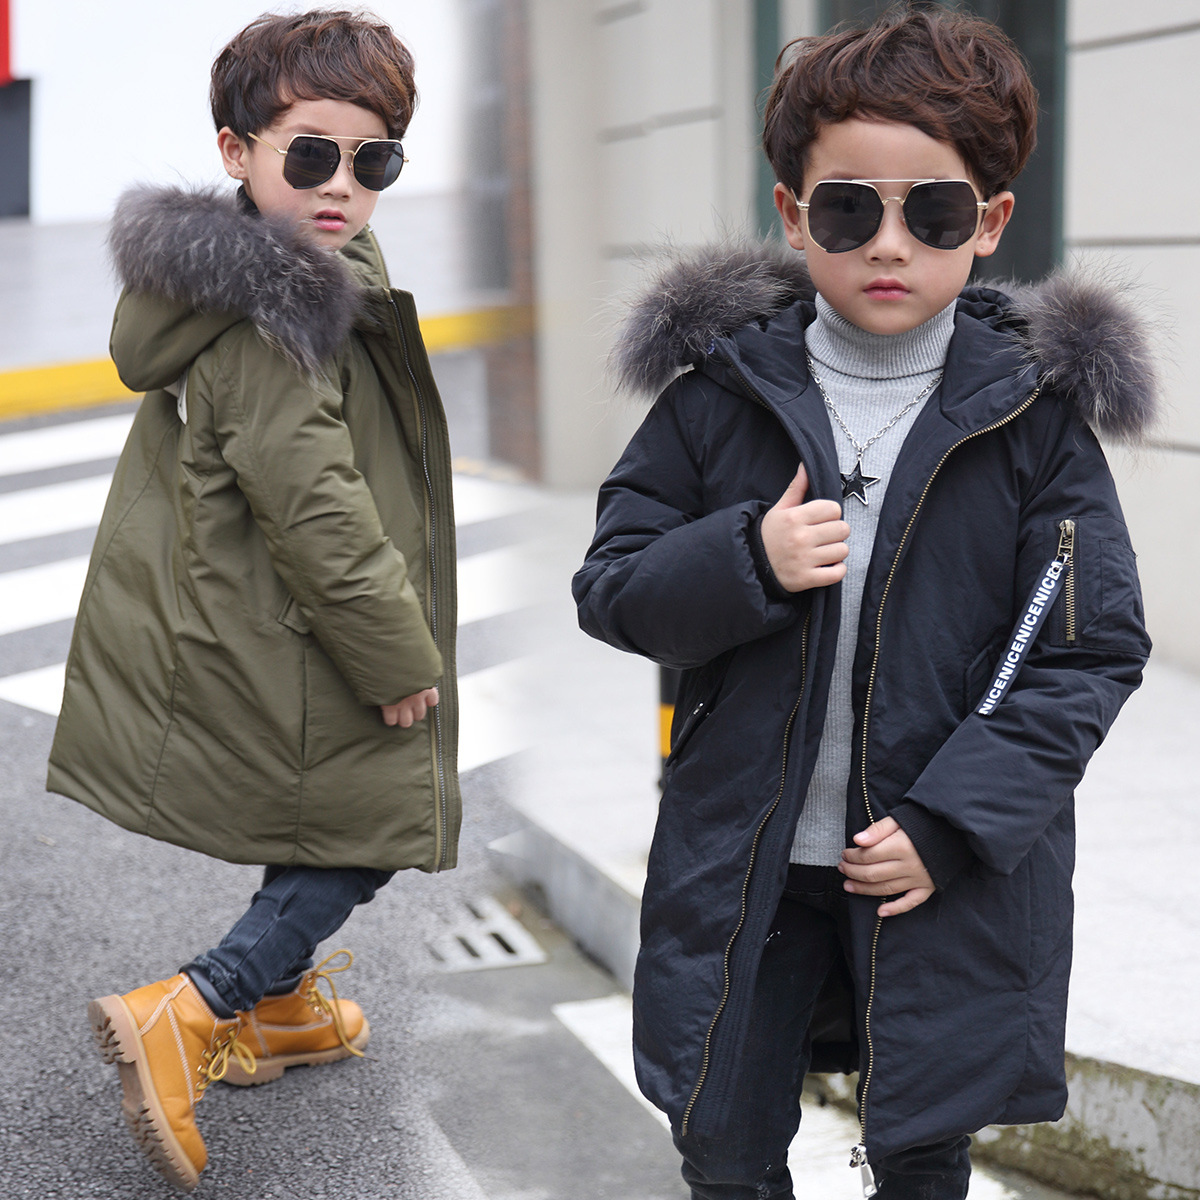 2017new  Fashion Children Feather Boy Clothes In Genuine Winter Boy Jacket Long Thick Coat  Boys Winter Thick  Warm Jacket ноутбук трансформер hp x2 detachable 10 p002ur 10 1 intel atom x5 z8350 1 44ггц 2гб 32гб ssd intel hd graphics 400 windows 10 белый [y5v04ea]